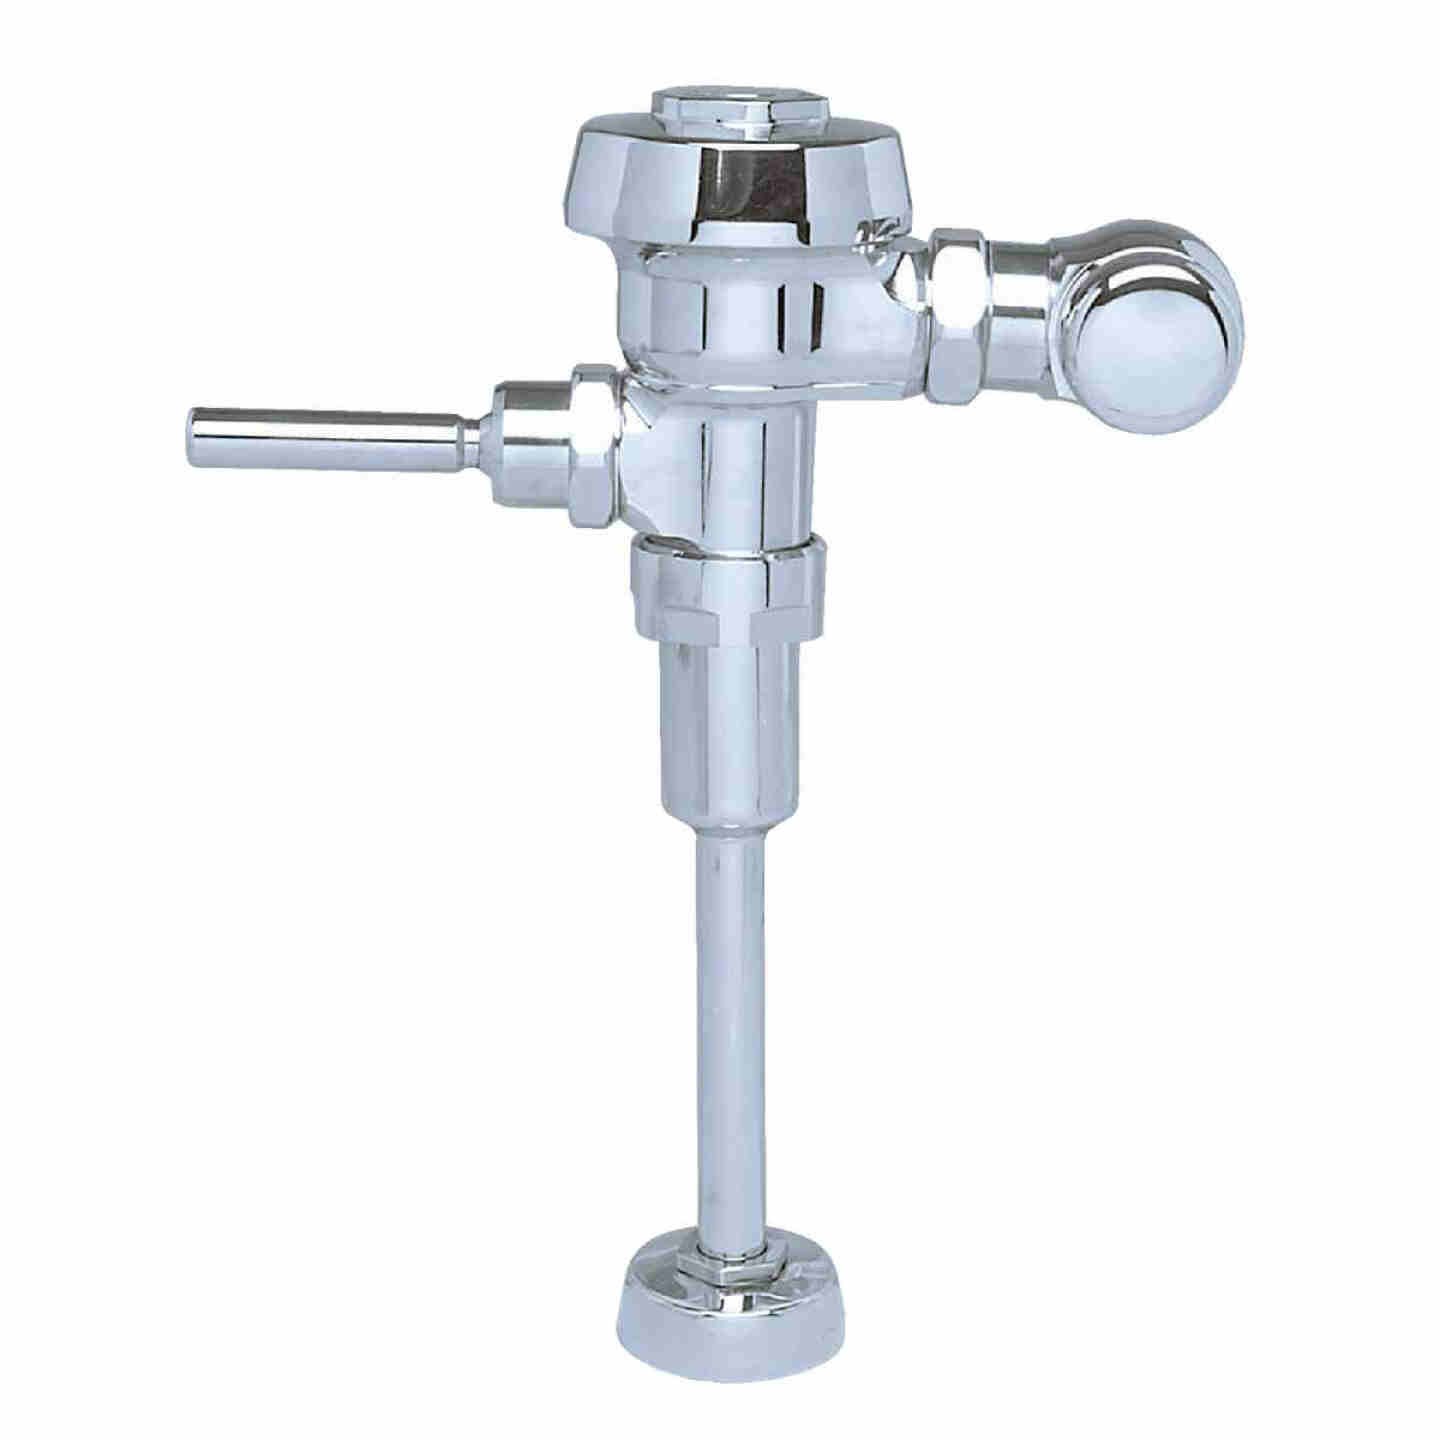 Sloan Royal 186 1.5 GPF Urinal Flush Valve Image 1